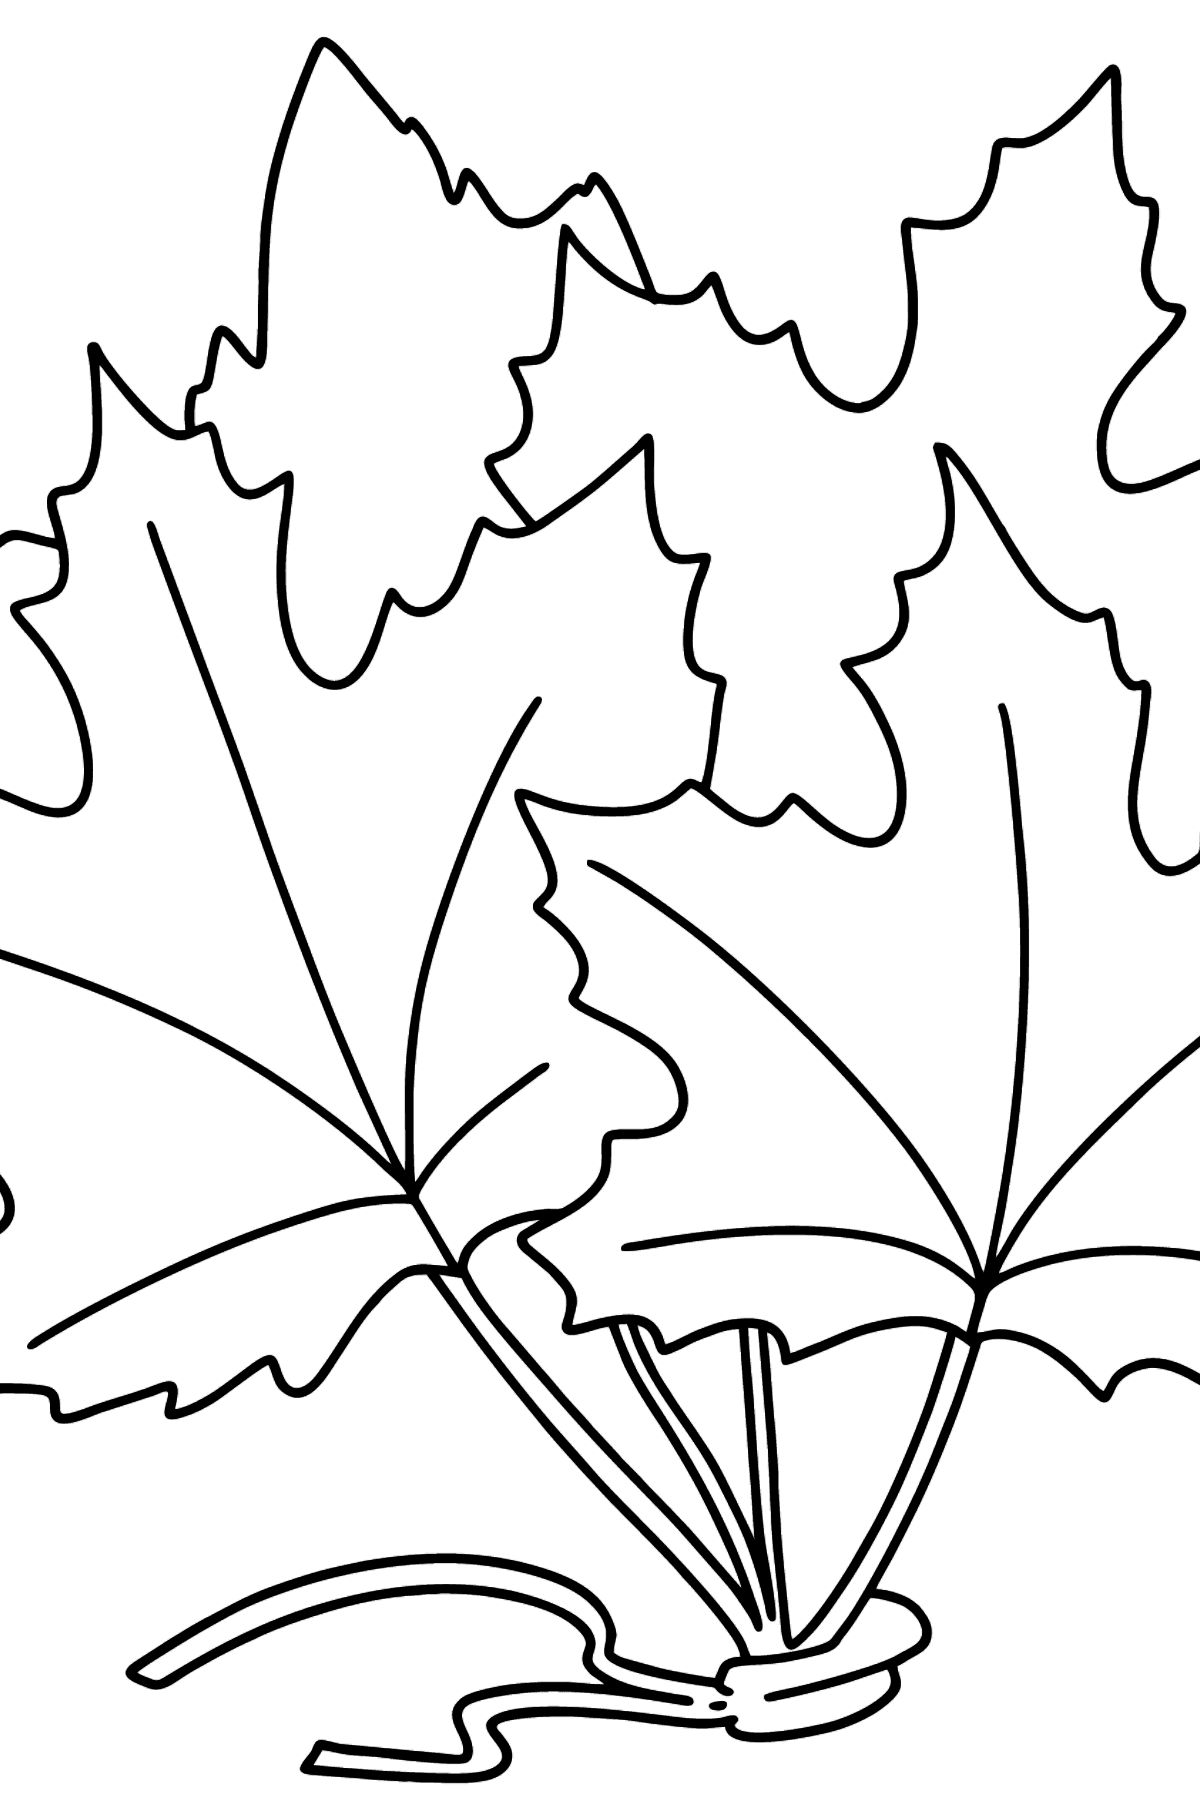 Maple Bouquet coloring page - Coloring Pages for Kids